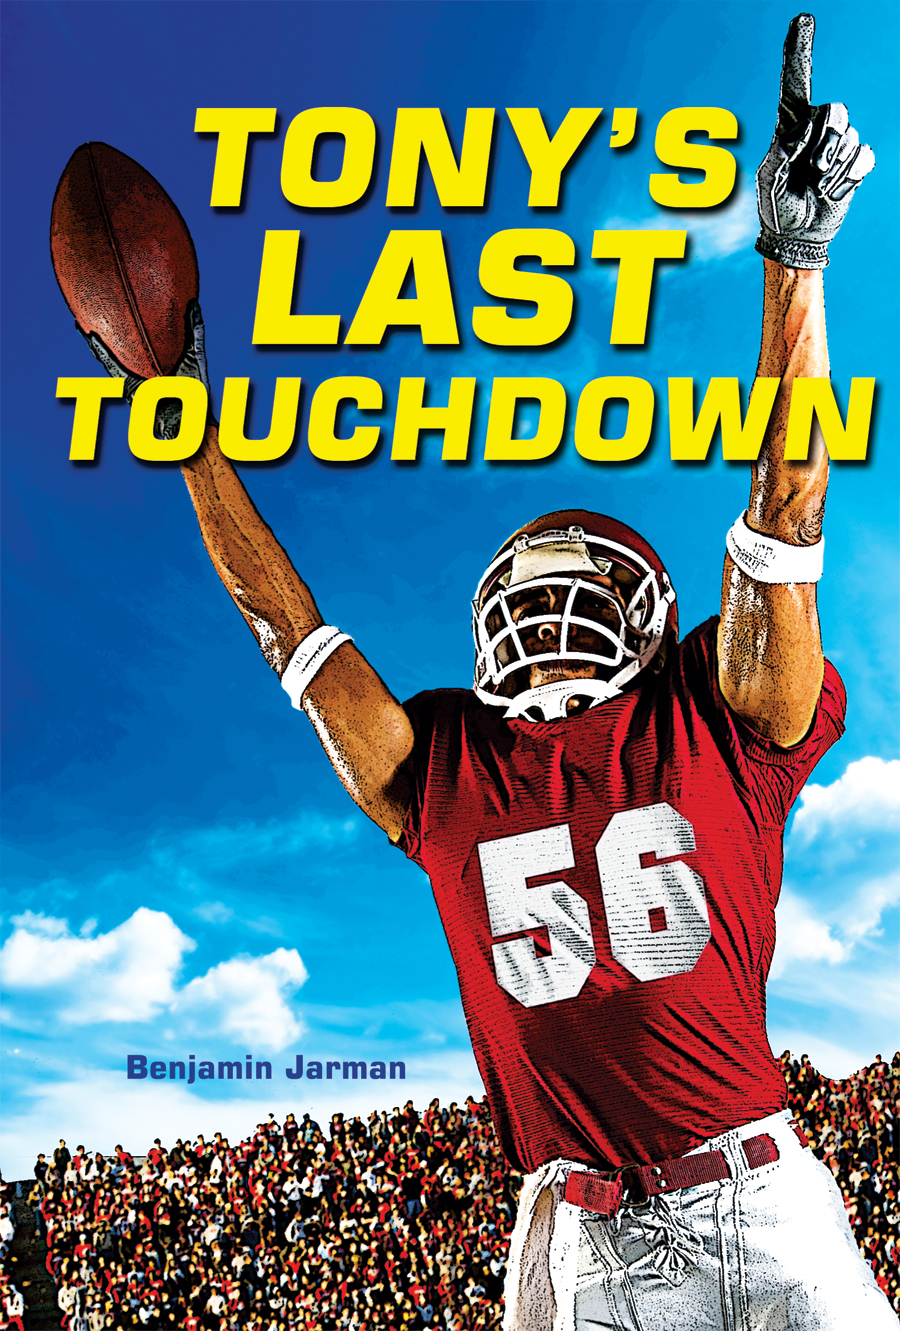 Tony's Last Touchdown By: Benjamin Jarman